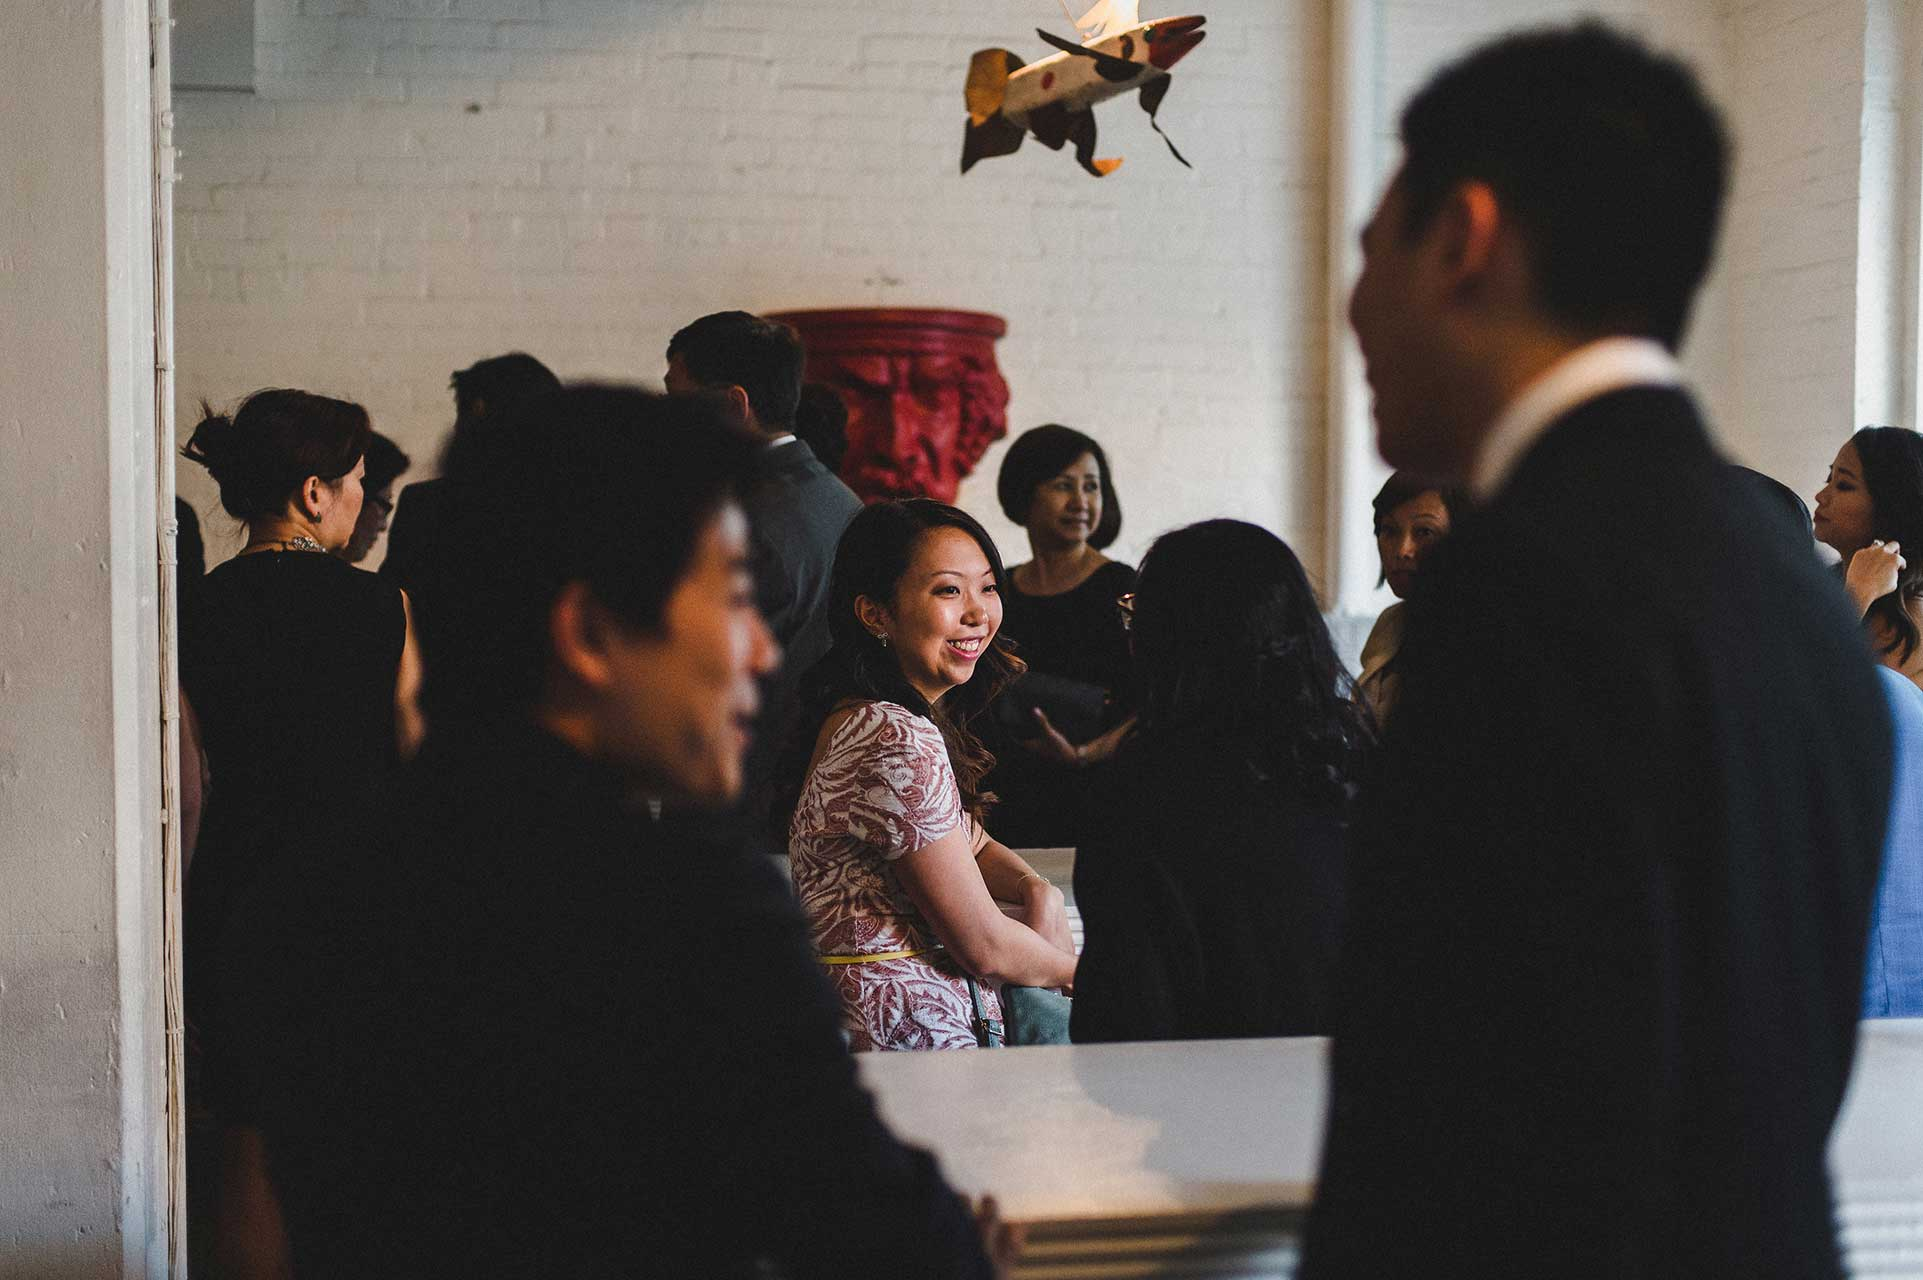 Unique Wedding Venues Toronto - Cocktail Hour - Toronto Loft